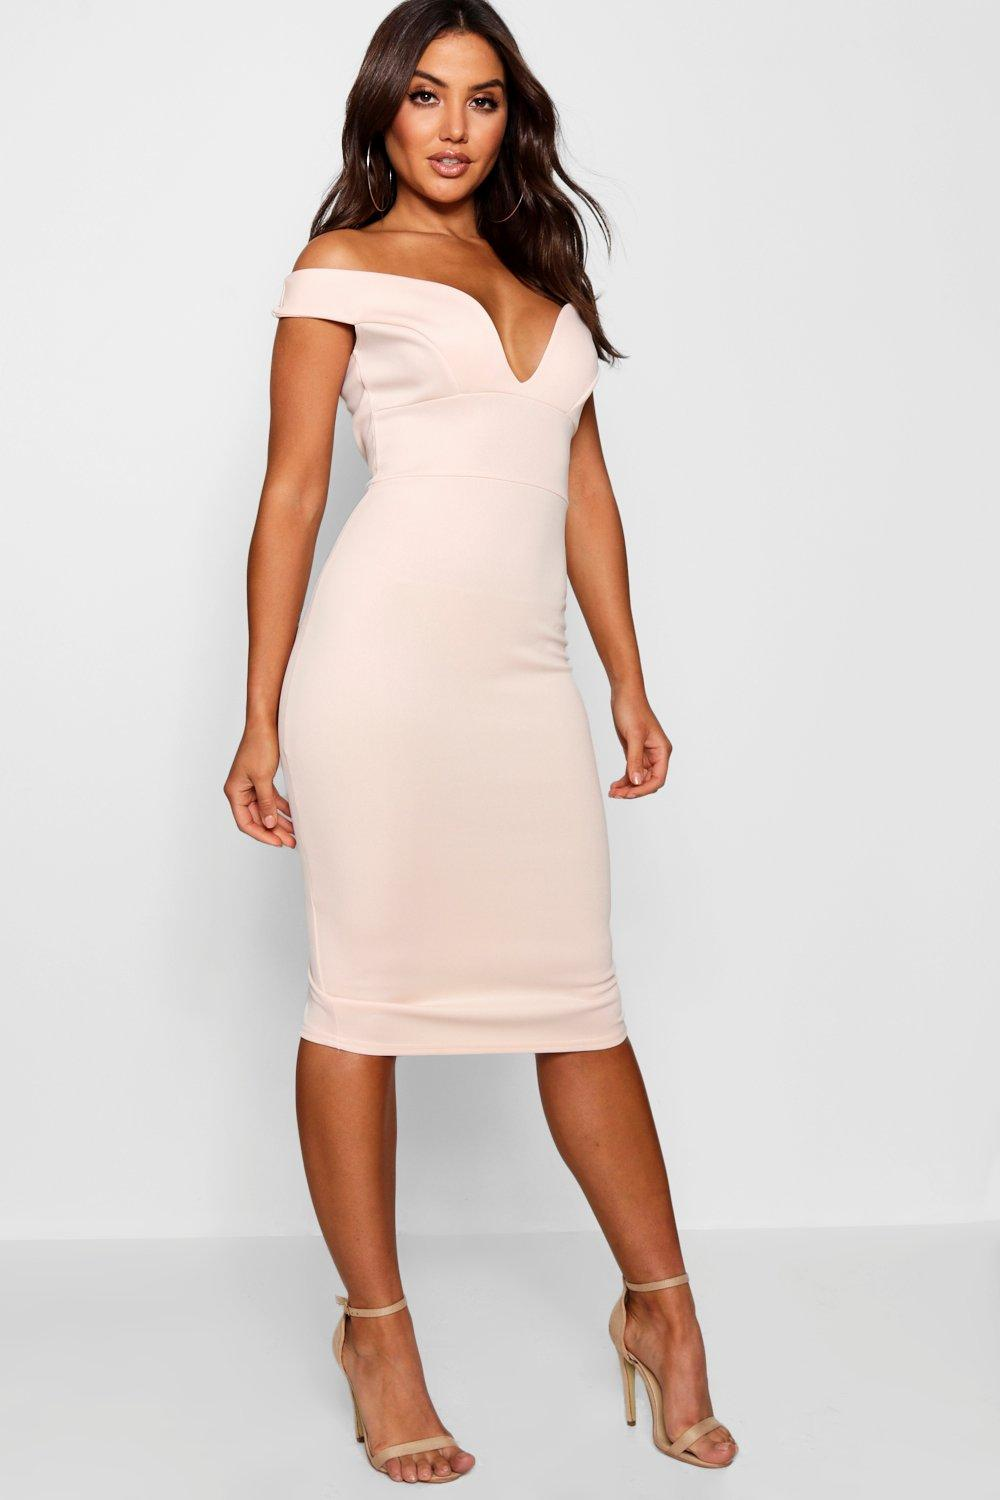 6e409065c958 Sweetheart Off Shoulder Bodycon Midi Dress. Hover to zoom